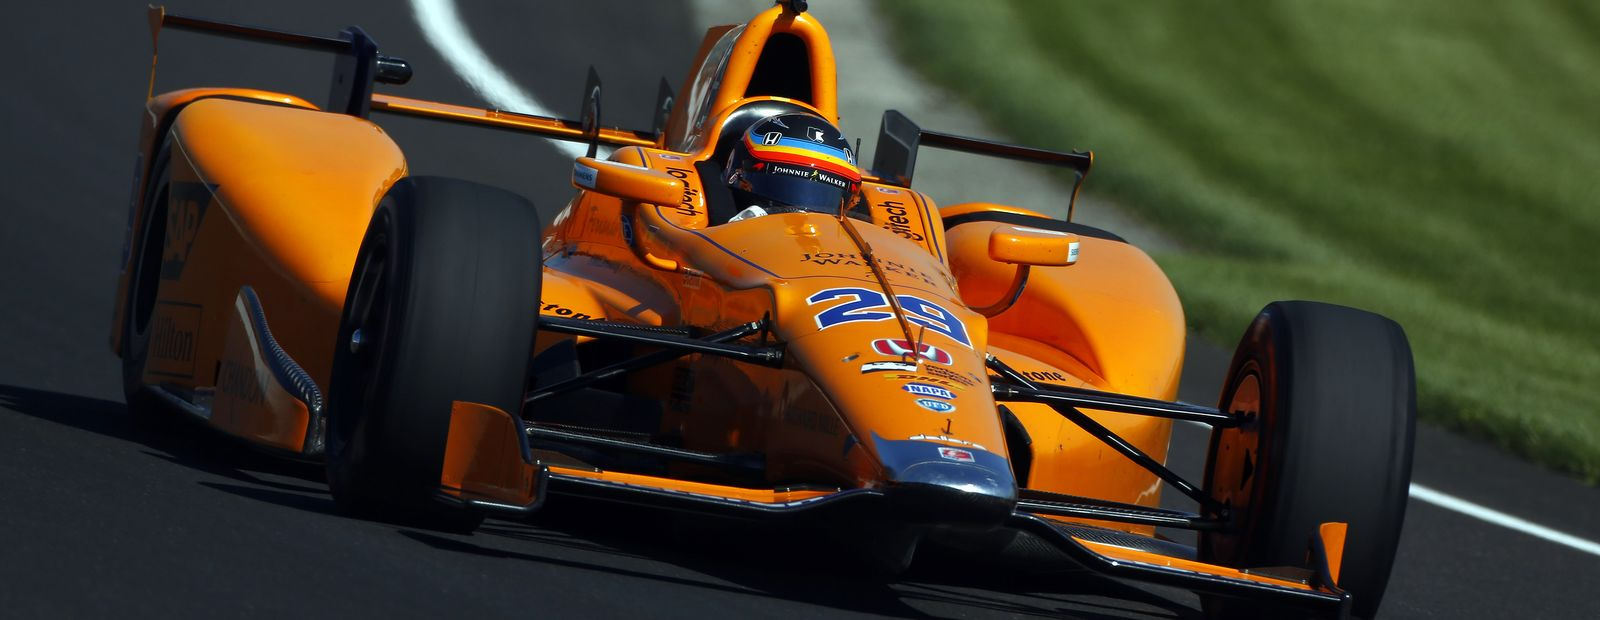 McLaren returns to the Indy 500 with Fernando Alonso in 2019